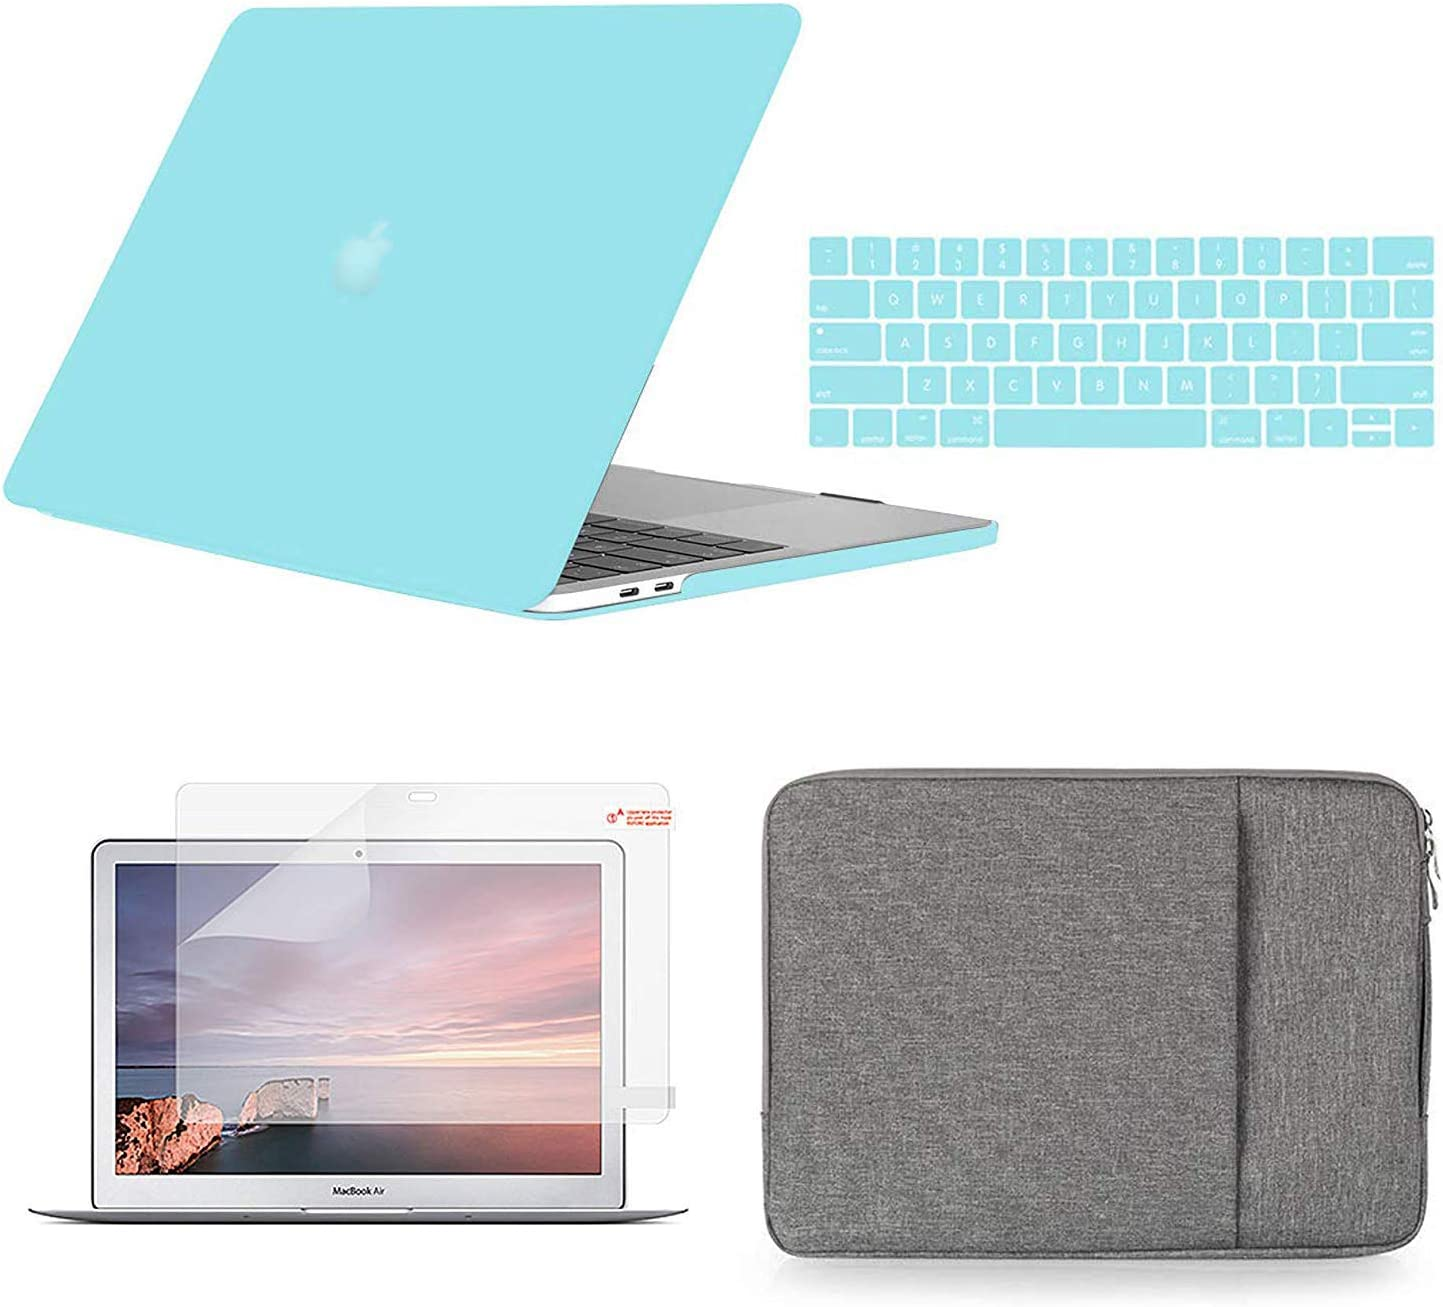 Holilife Compatible with MacBook Air 13 inch Case Bundle 4 in 1, Plastic Hard Shell & Keyboard Cover & Sleeve Bag & Screen Protector Compatible with 2010-2017 Release Macbook Air 13 Model A1369/A1466 - Mint Blue